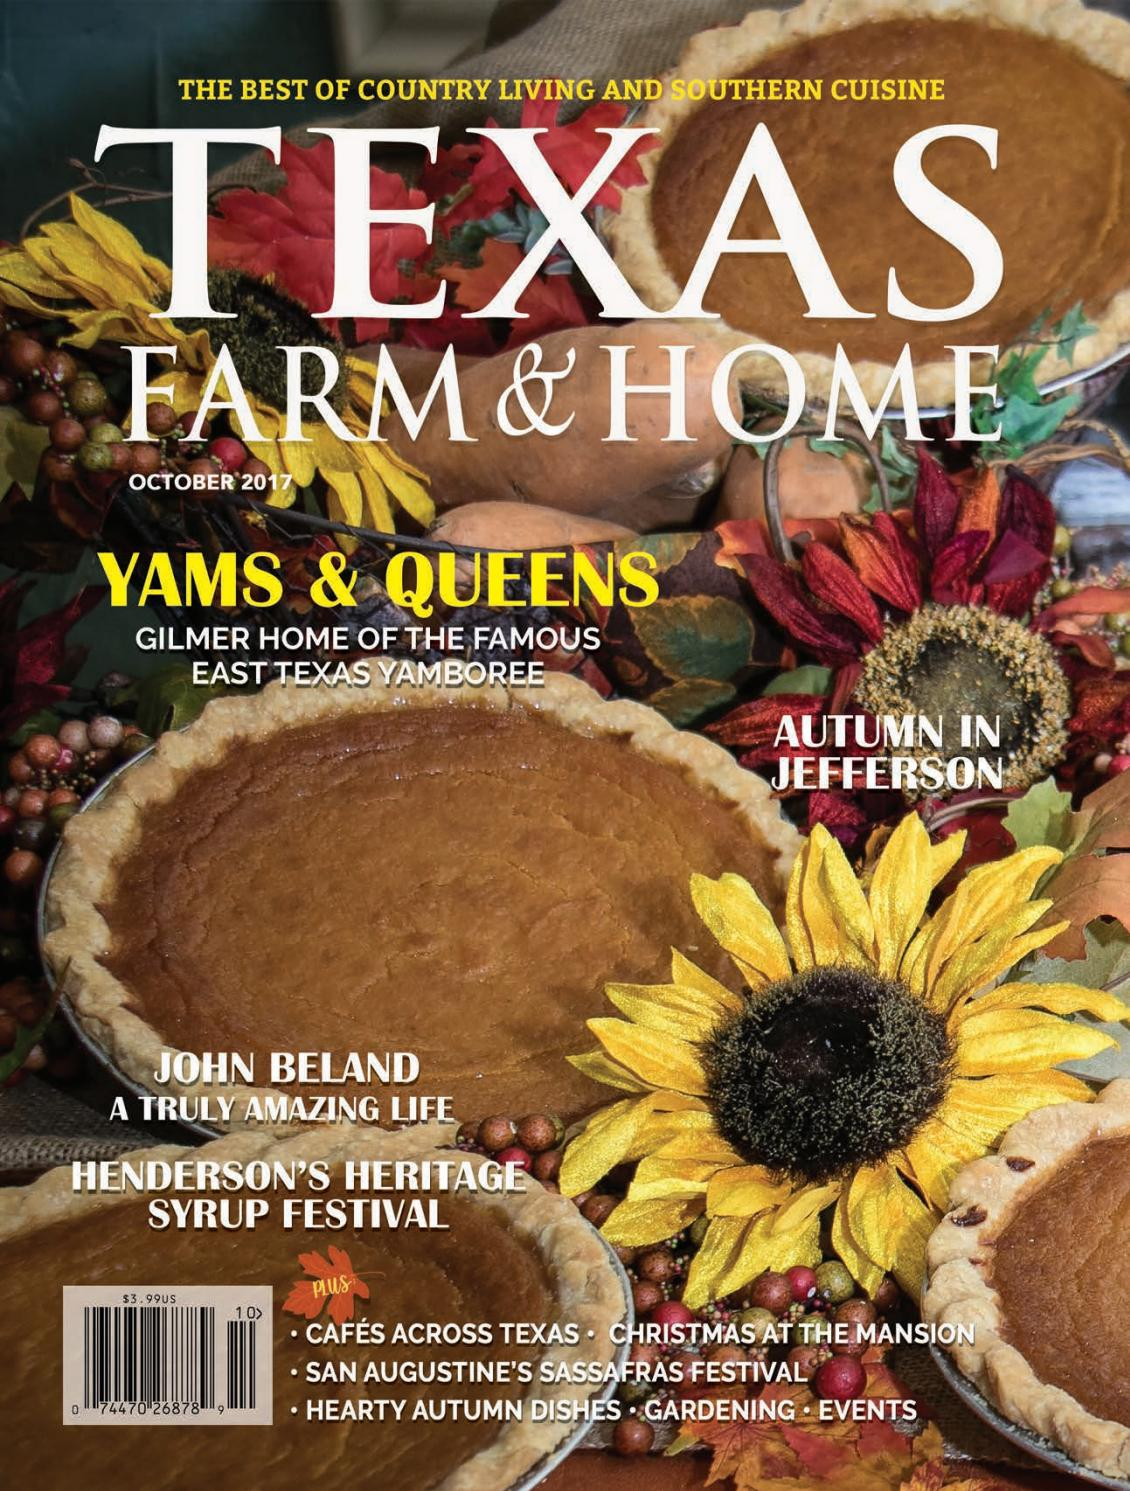 Tfh october 2017 new for web by Texas Farm & Home - issuu